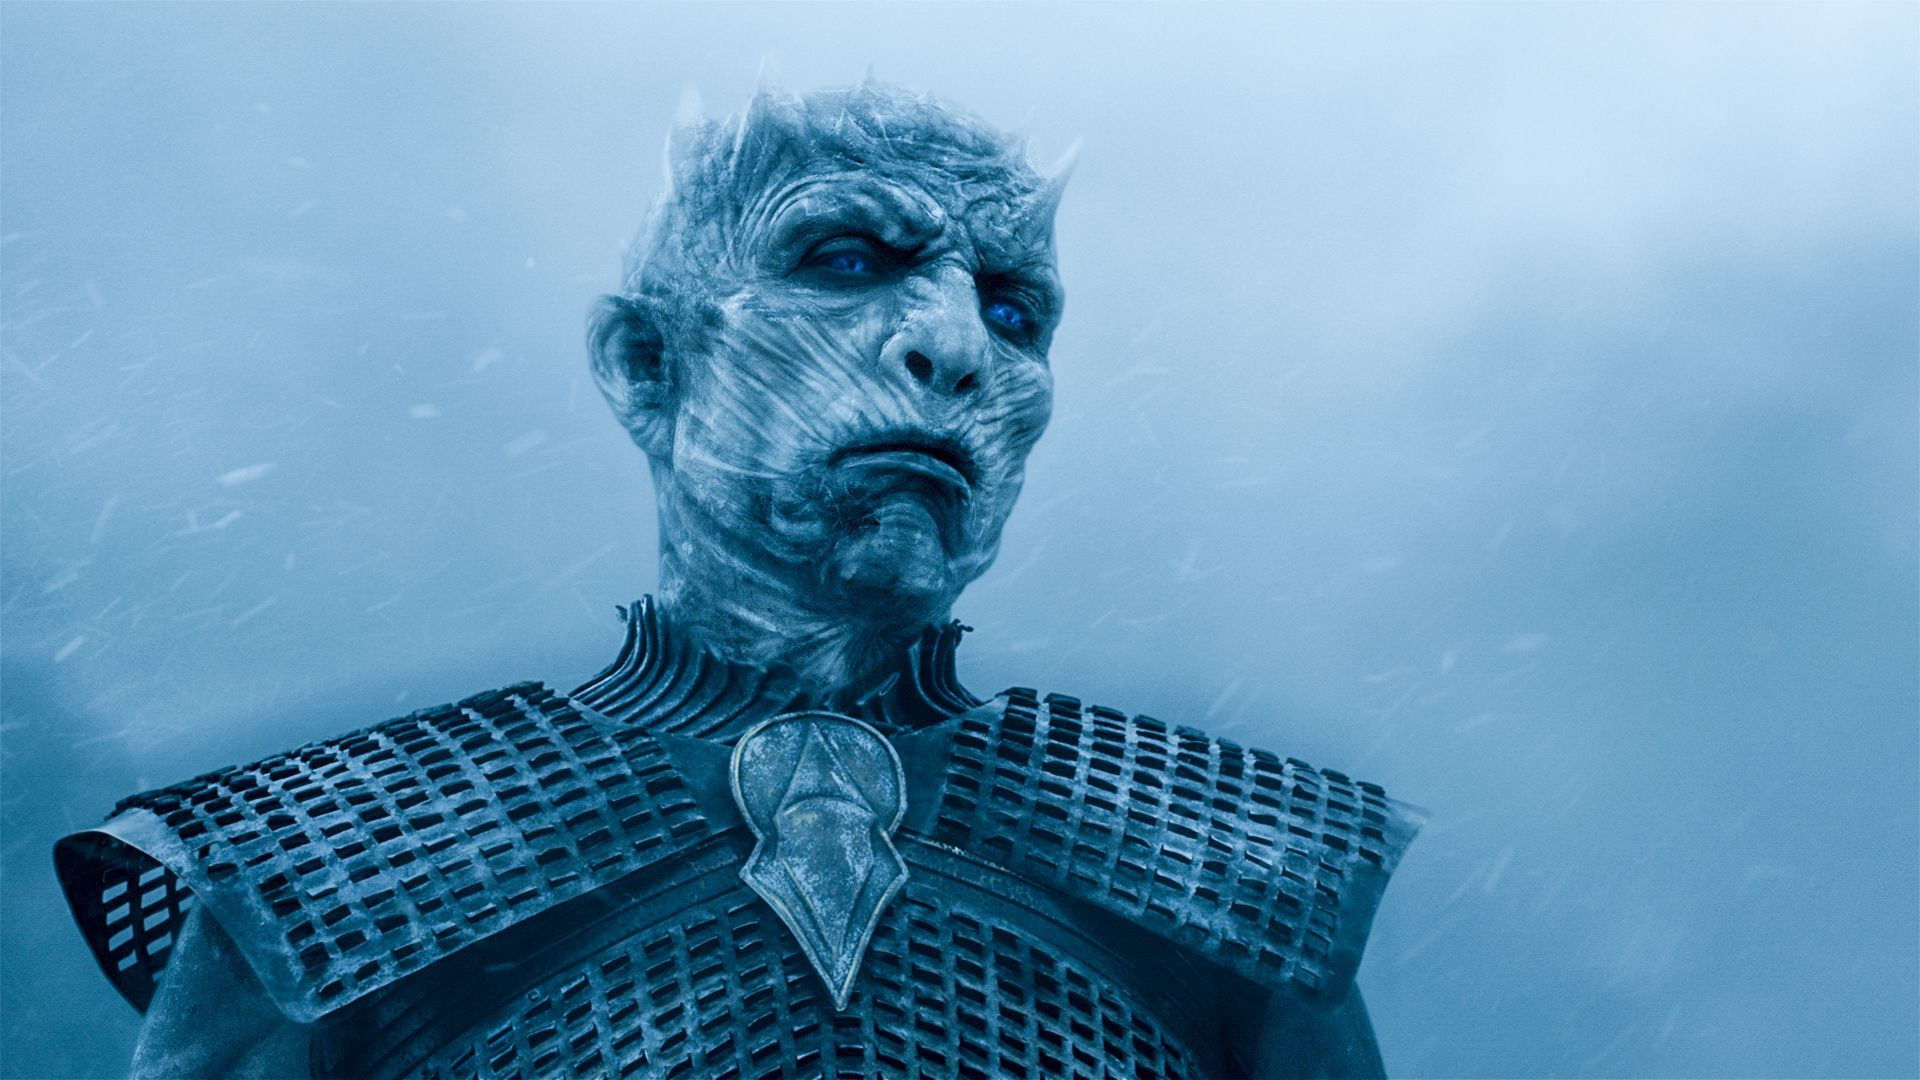 The Actor Who Plays Game Of Thrones' Night King Is Pretty Damn Hot IRL